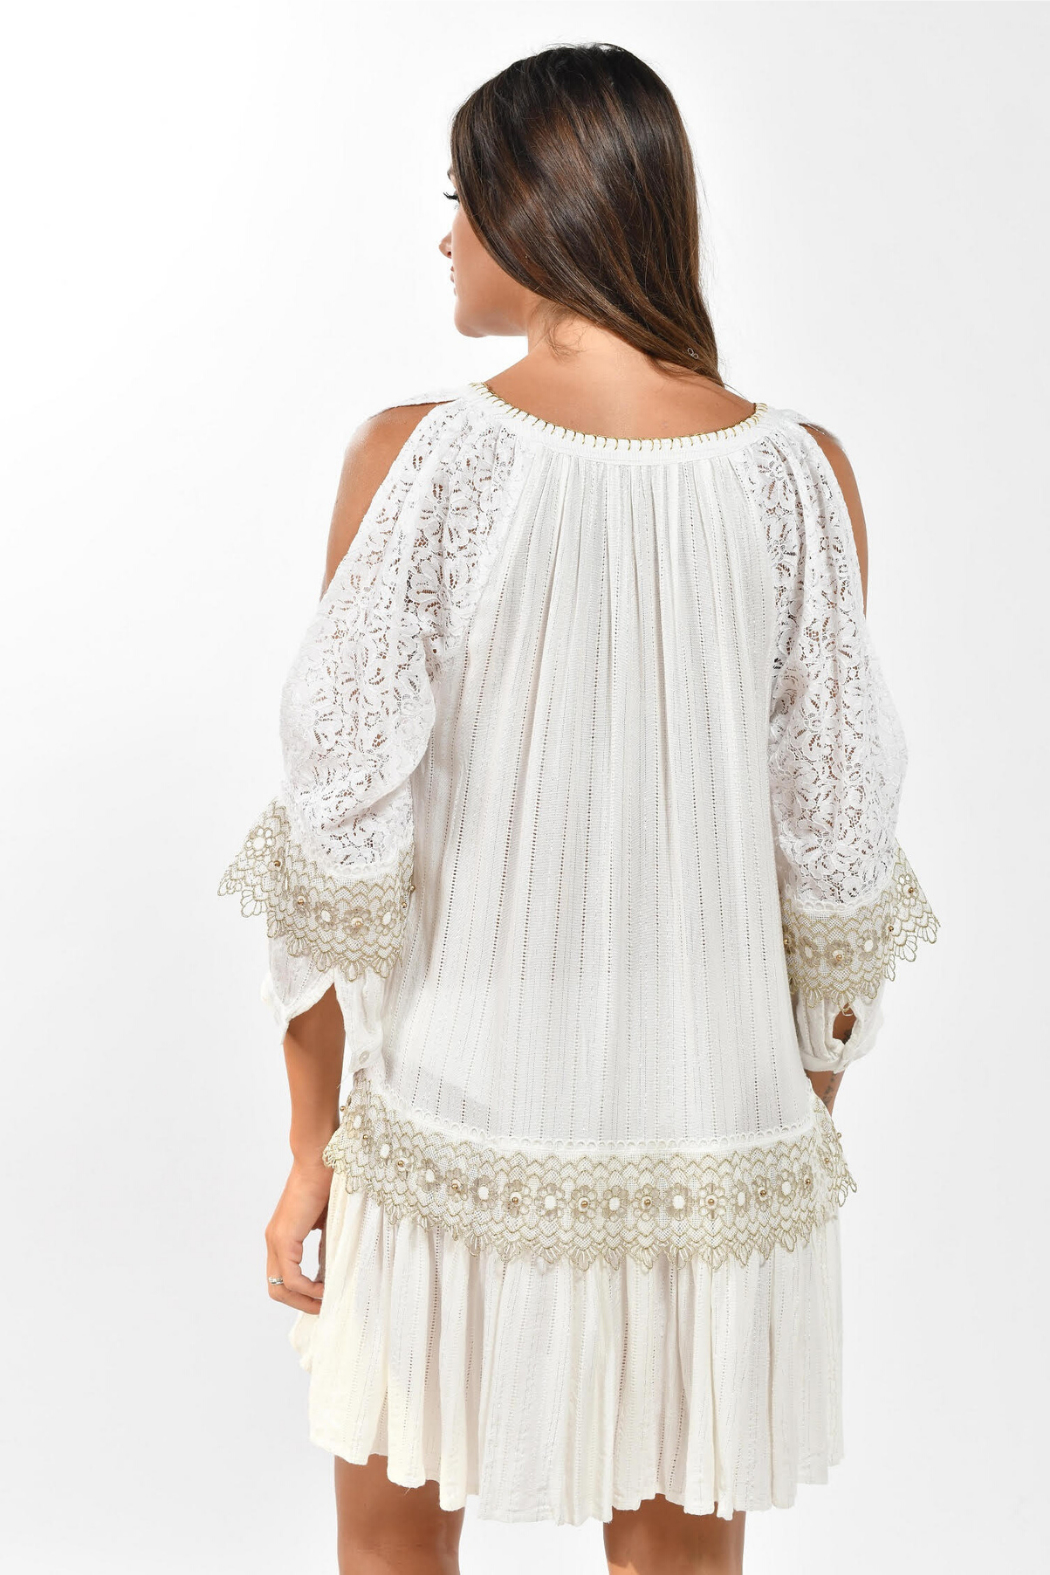 BAROK PARIS  Lace Boho Dress - Front Full Image